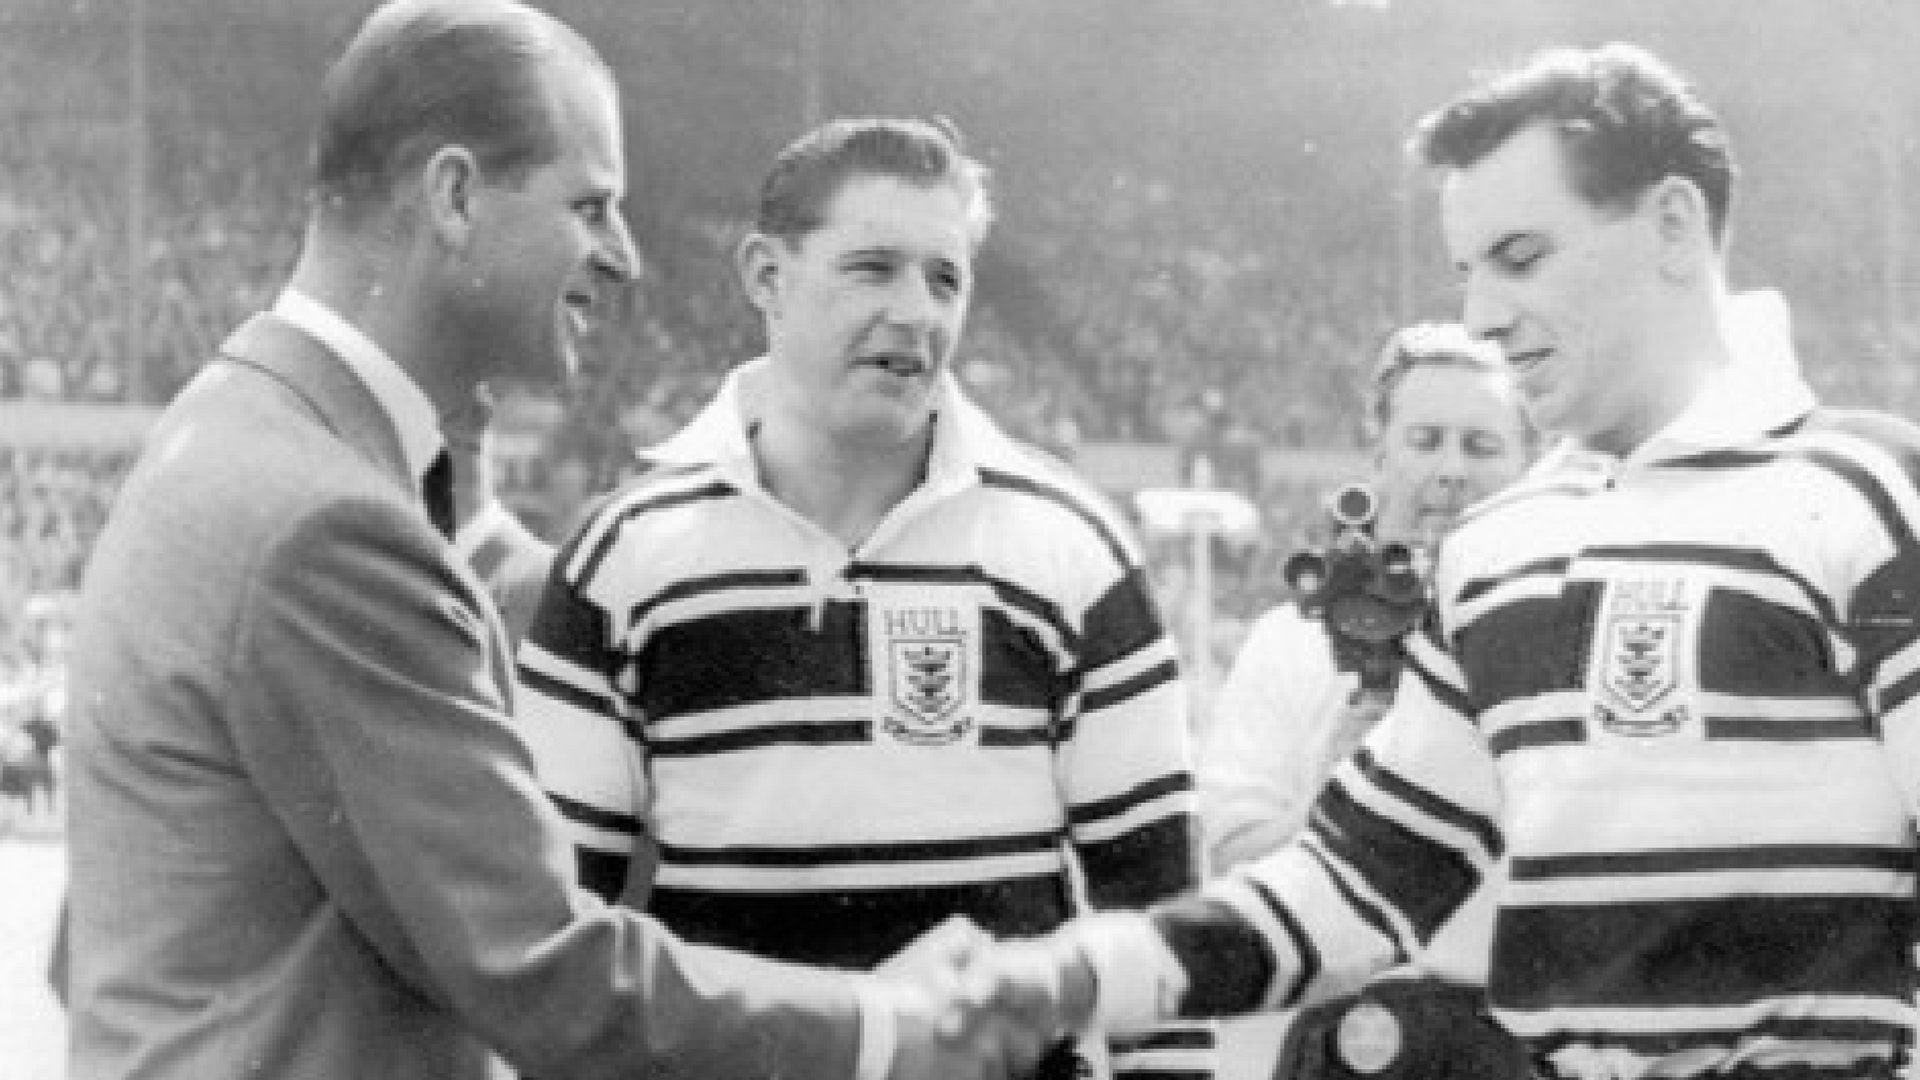 Hull FC's players are greeted by HRH Prince Phillip ahead of the 1960 Challenge Cup Final - only the club's seconds appearance at the national stadium.